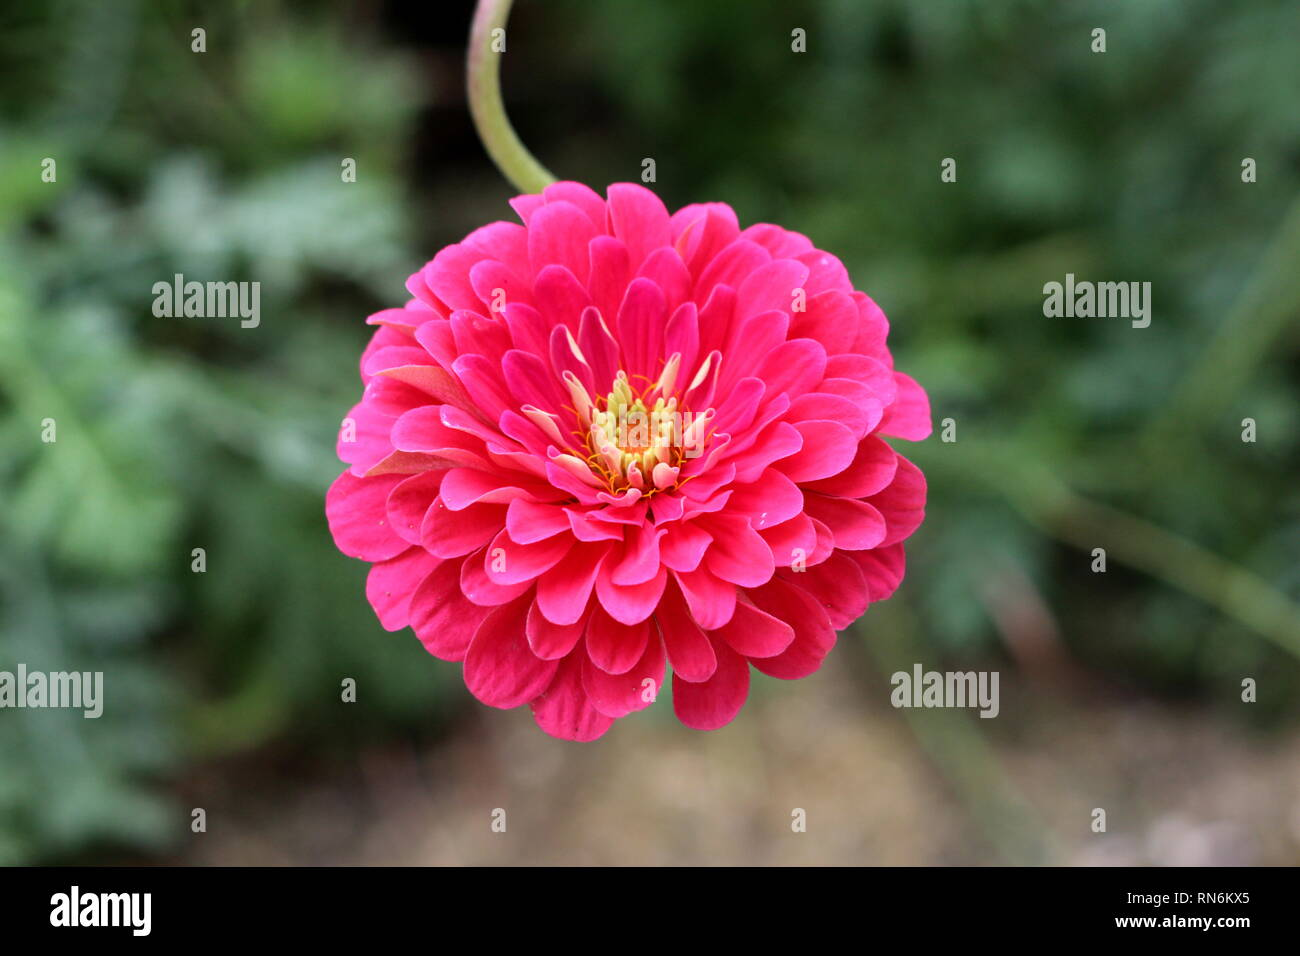 Perfectly symmetrical Zinnia flower with fully open blooming multi layered pink petals with white center surrounded with green leaves in local garden - Stock Image